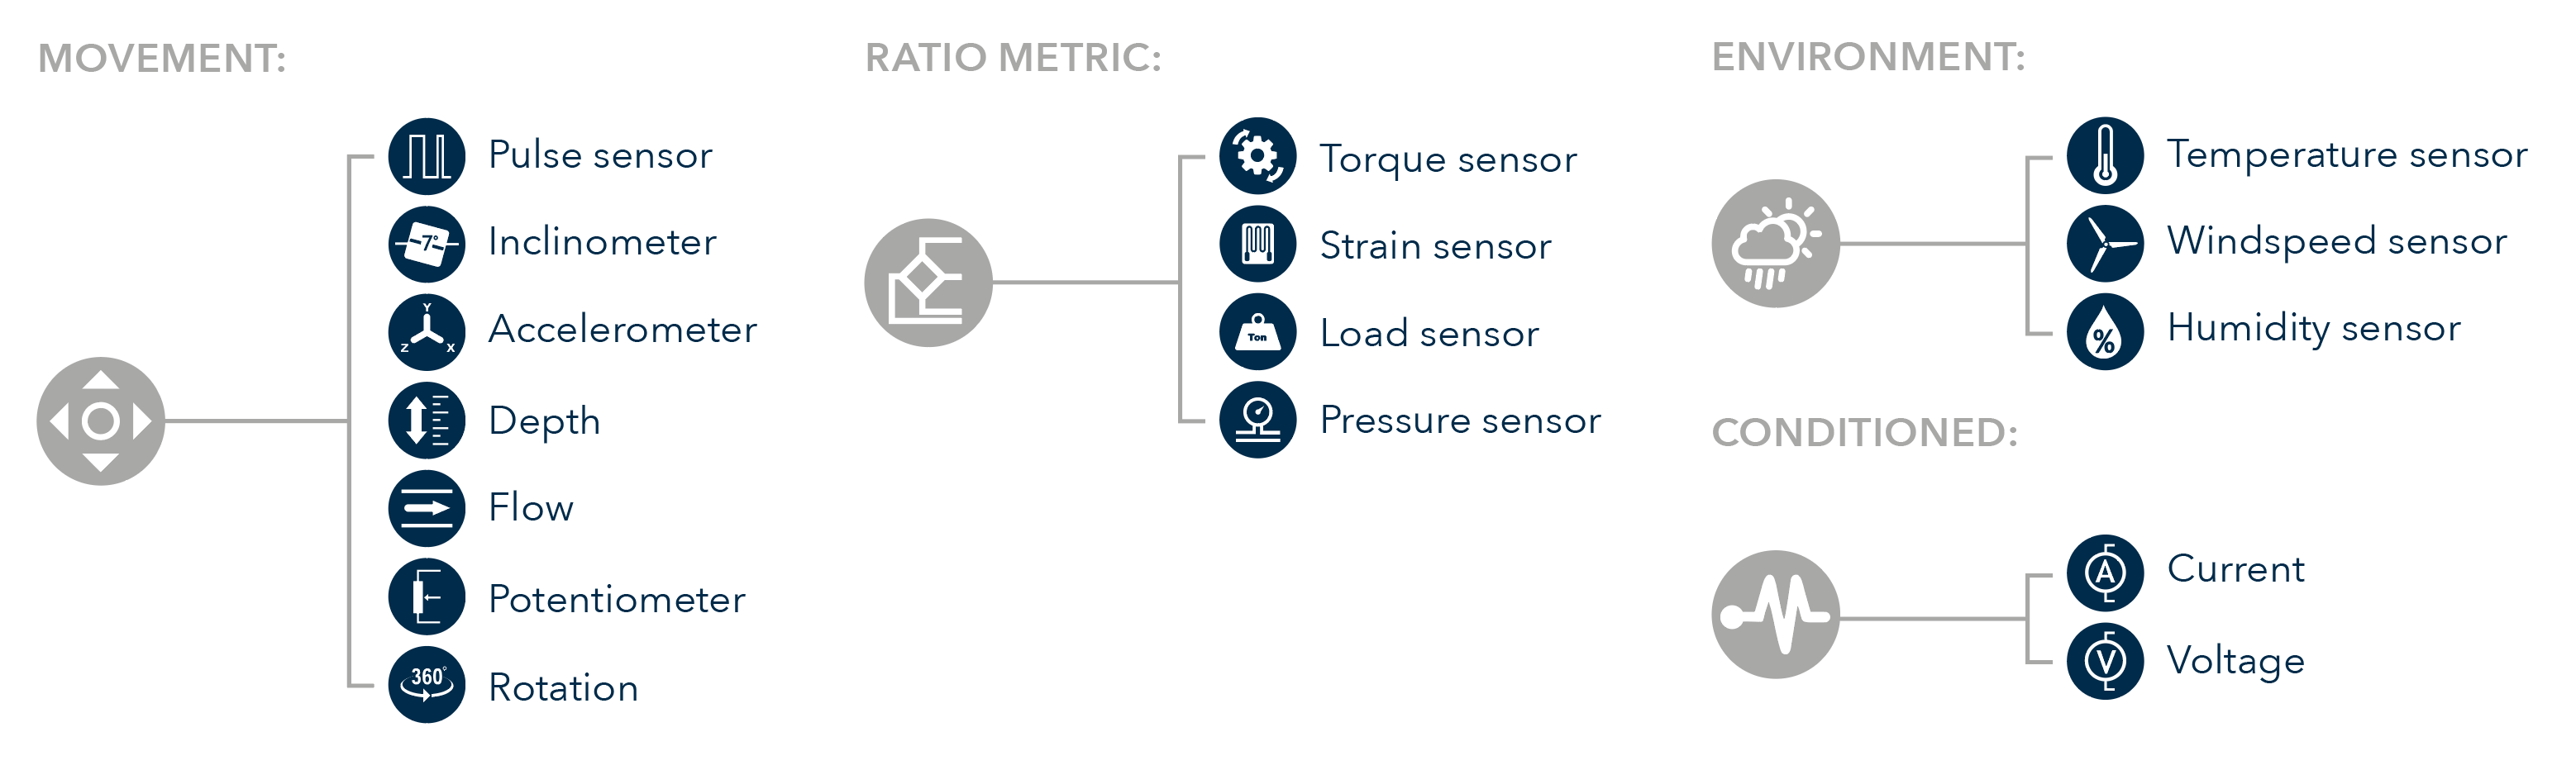 Compatible Sensors with T24 Instrumentation